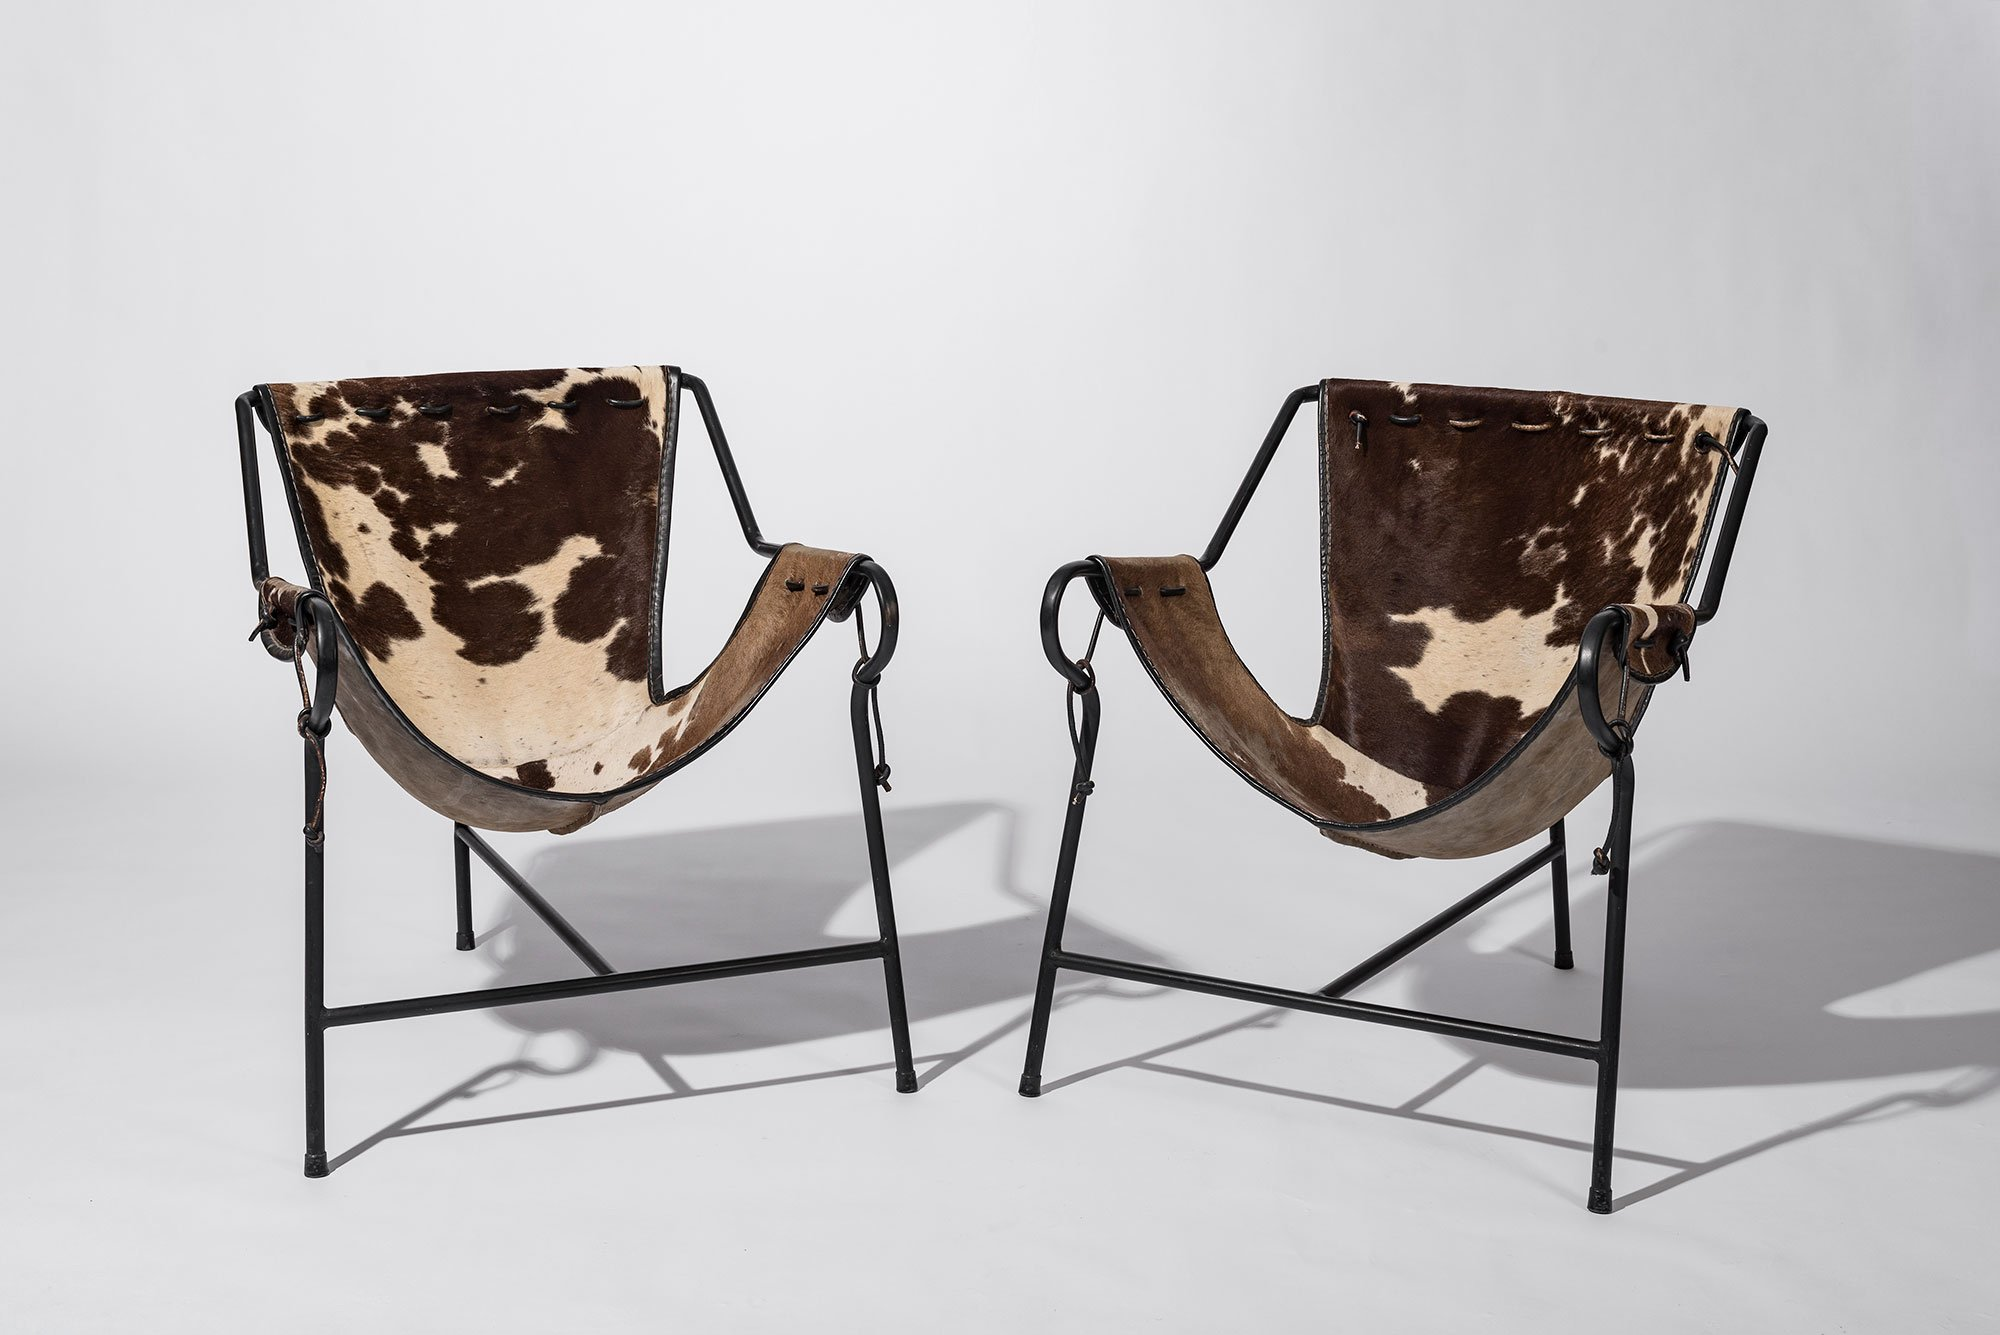 Tow Lina Bo Bardi Tripod chairs at Casati Gallery